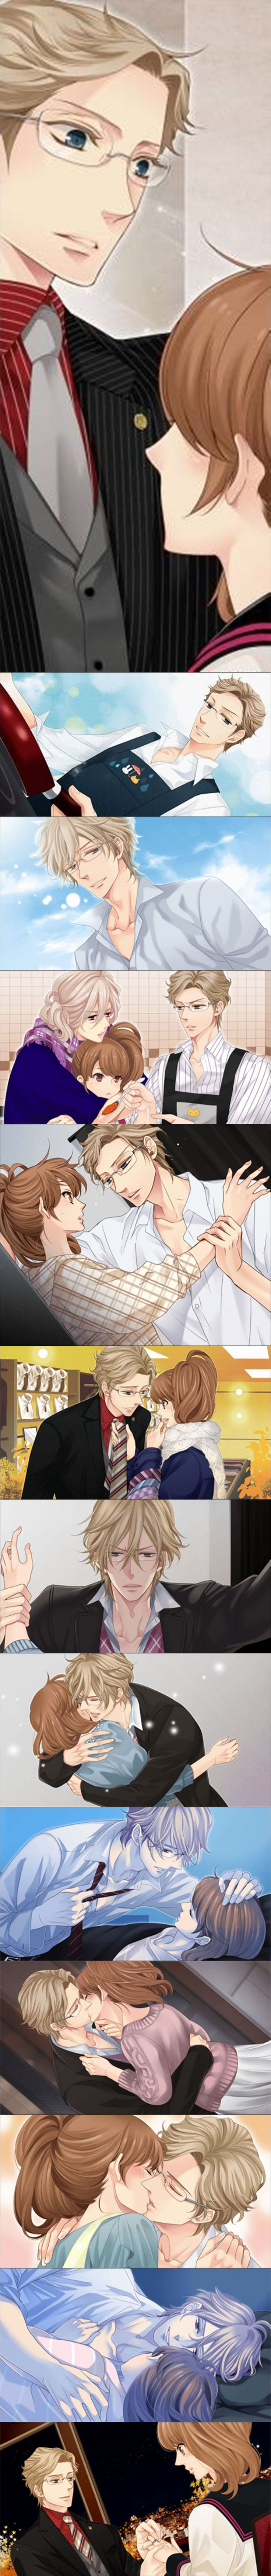 Brothers Conflict - Ukyo and Ema